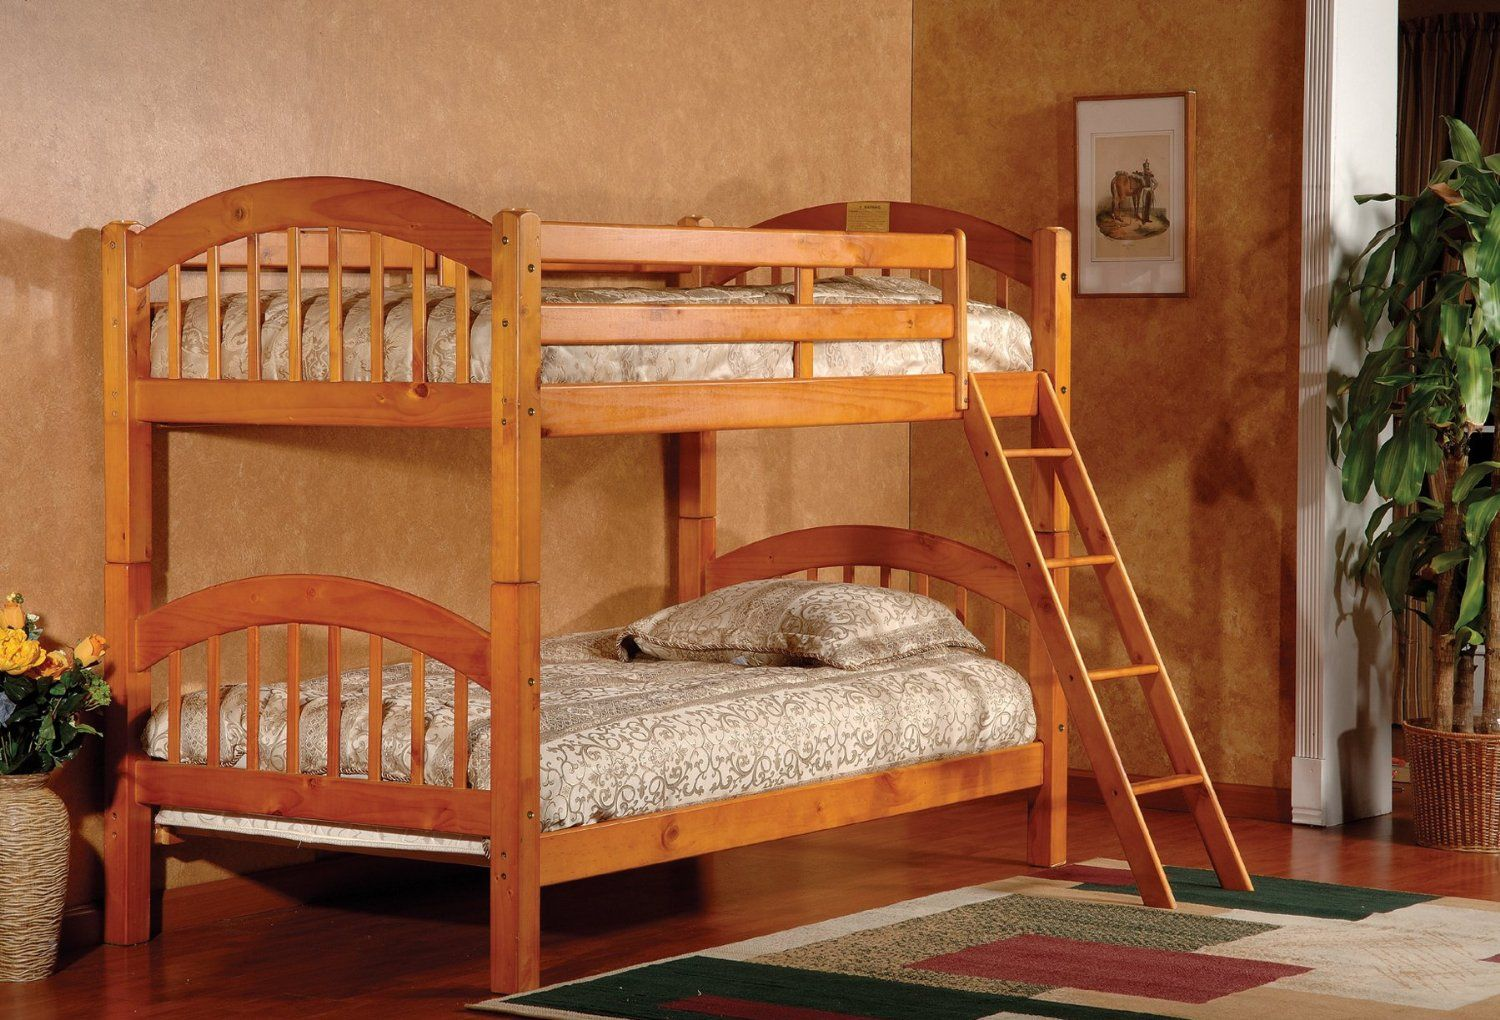 Unique Different Bunk Bed Designs For Kids Wooden Bunk Beds